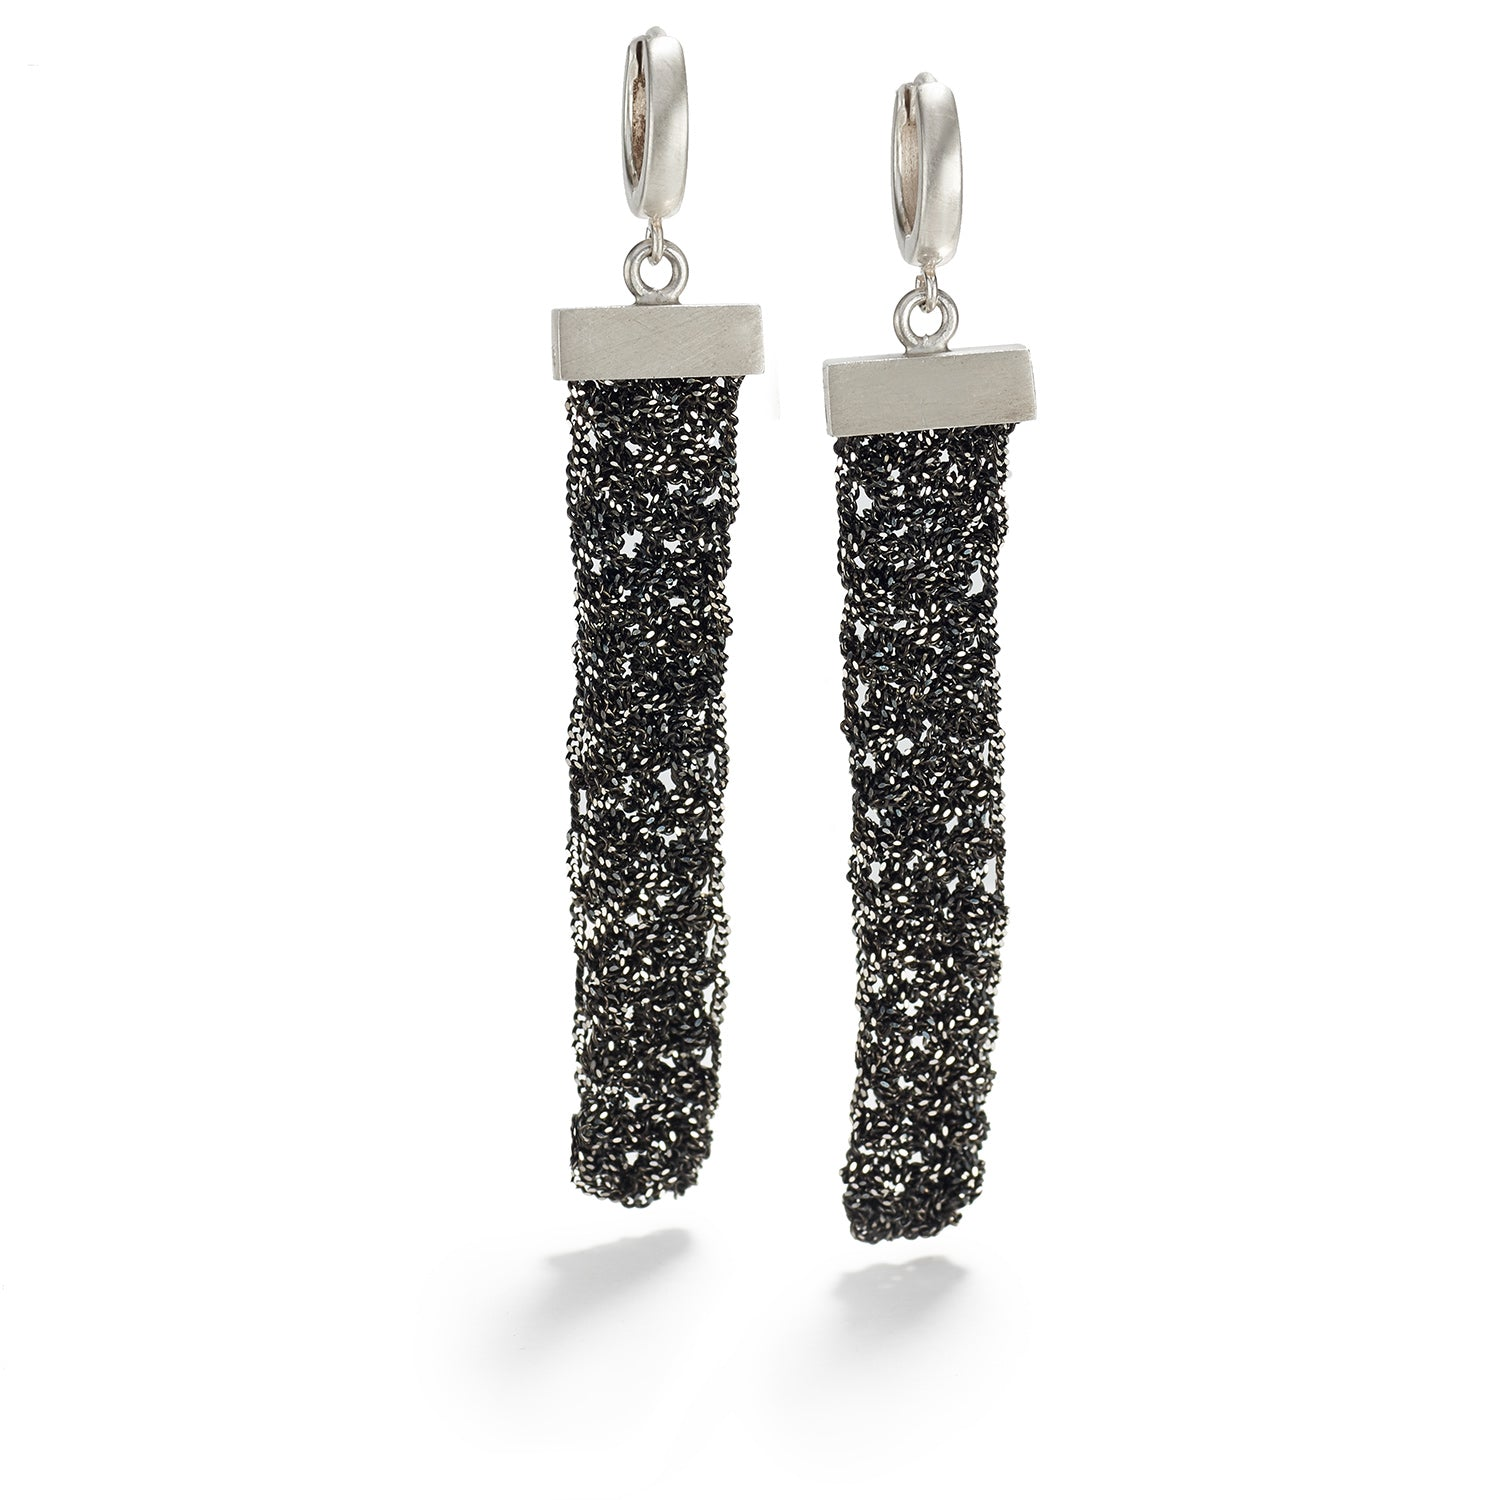 Knitted Oxidized Silver Earrings